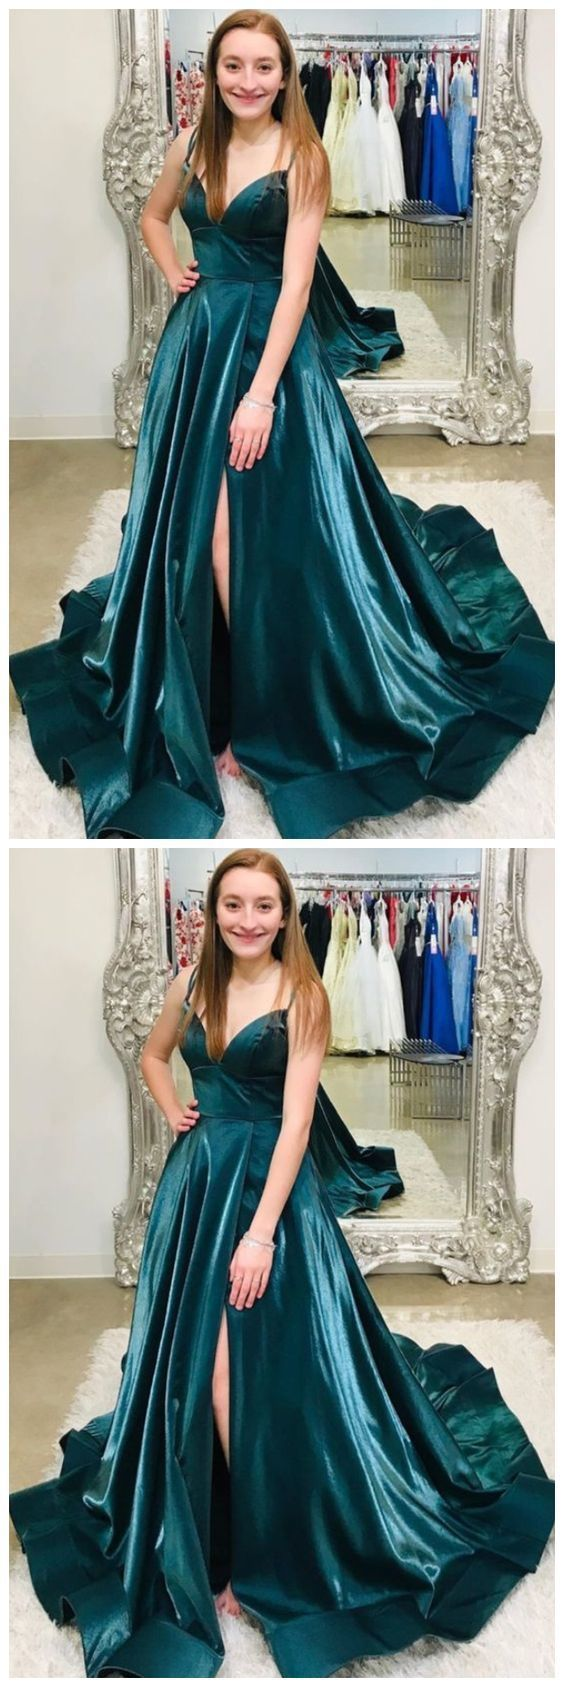 A-line long prom dress hunter green prom dresses 2678